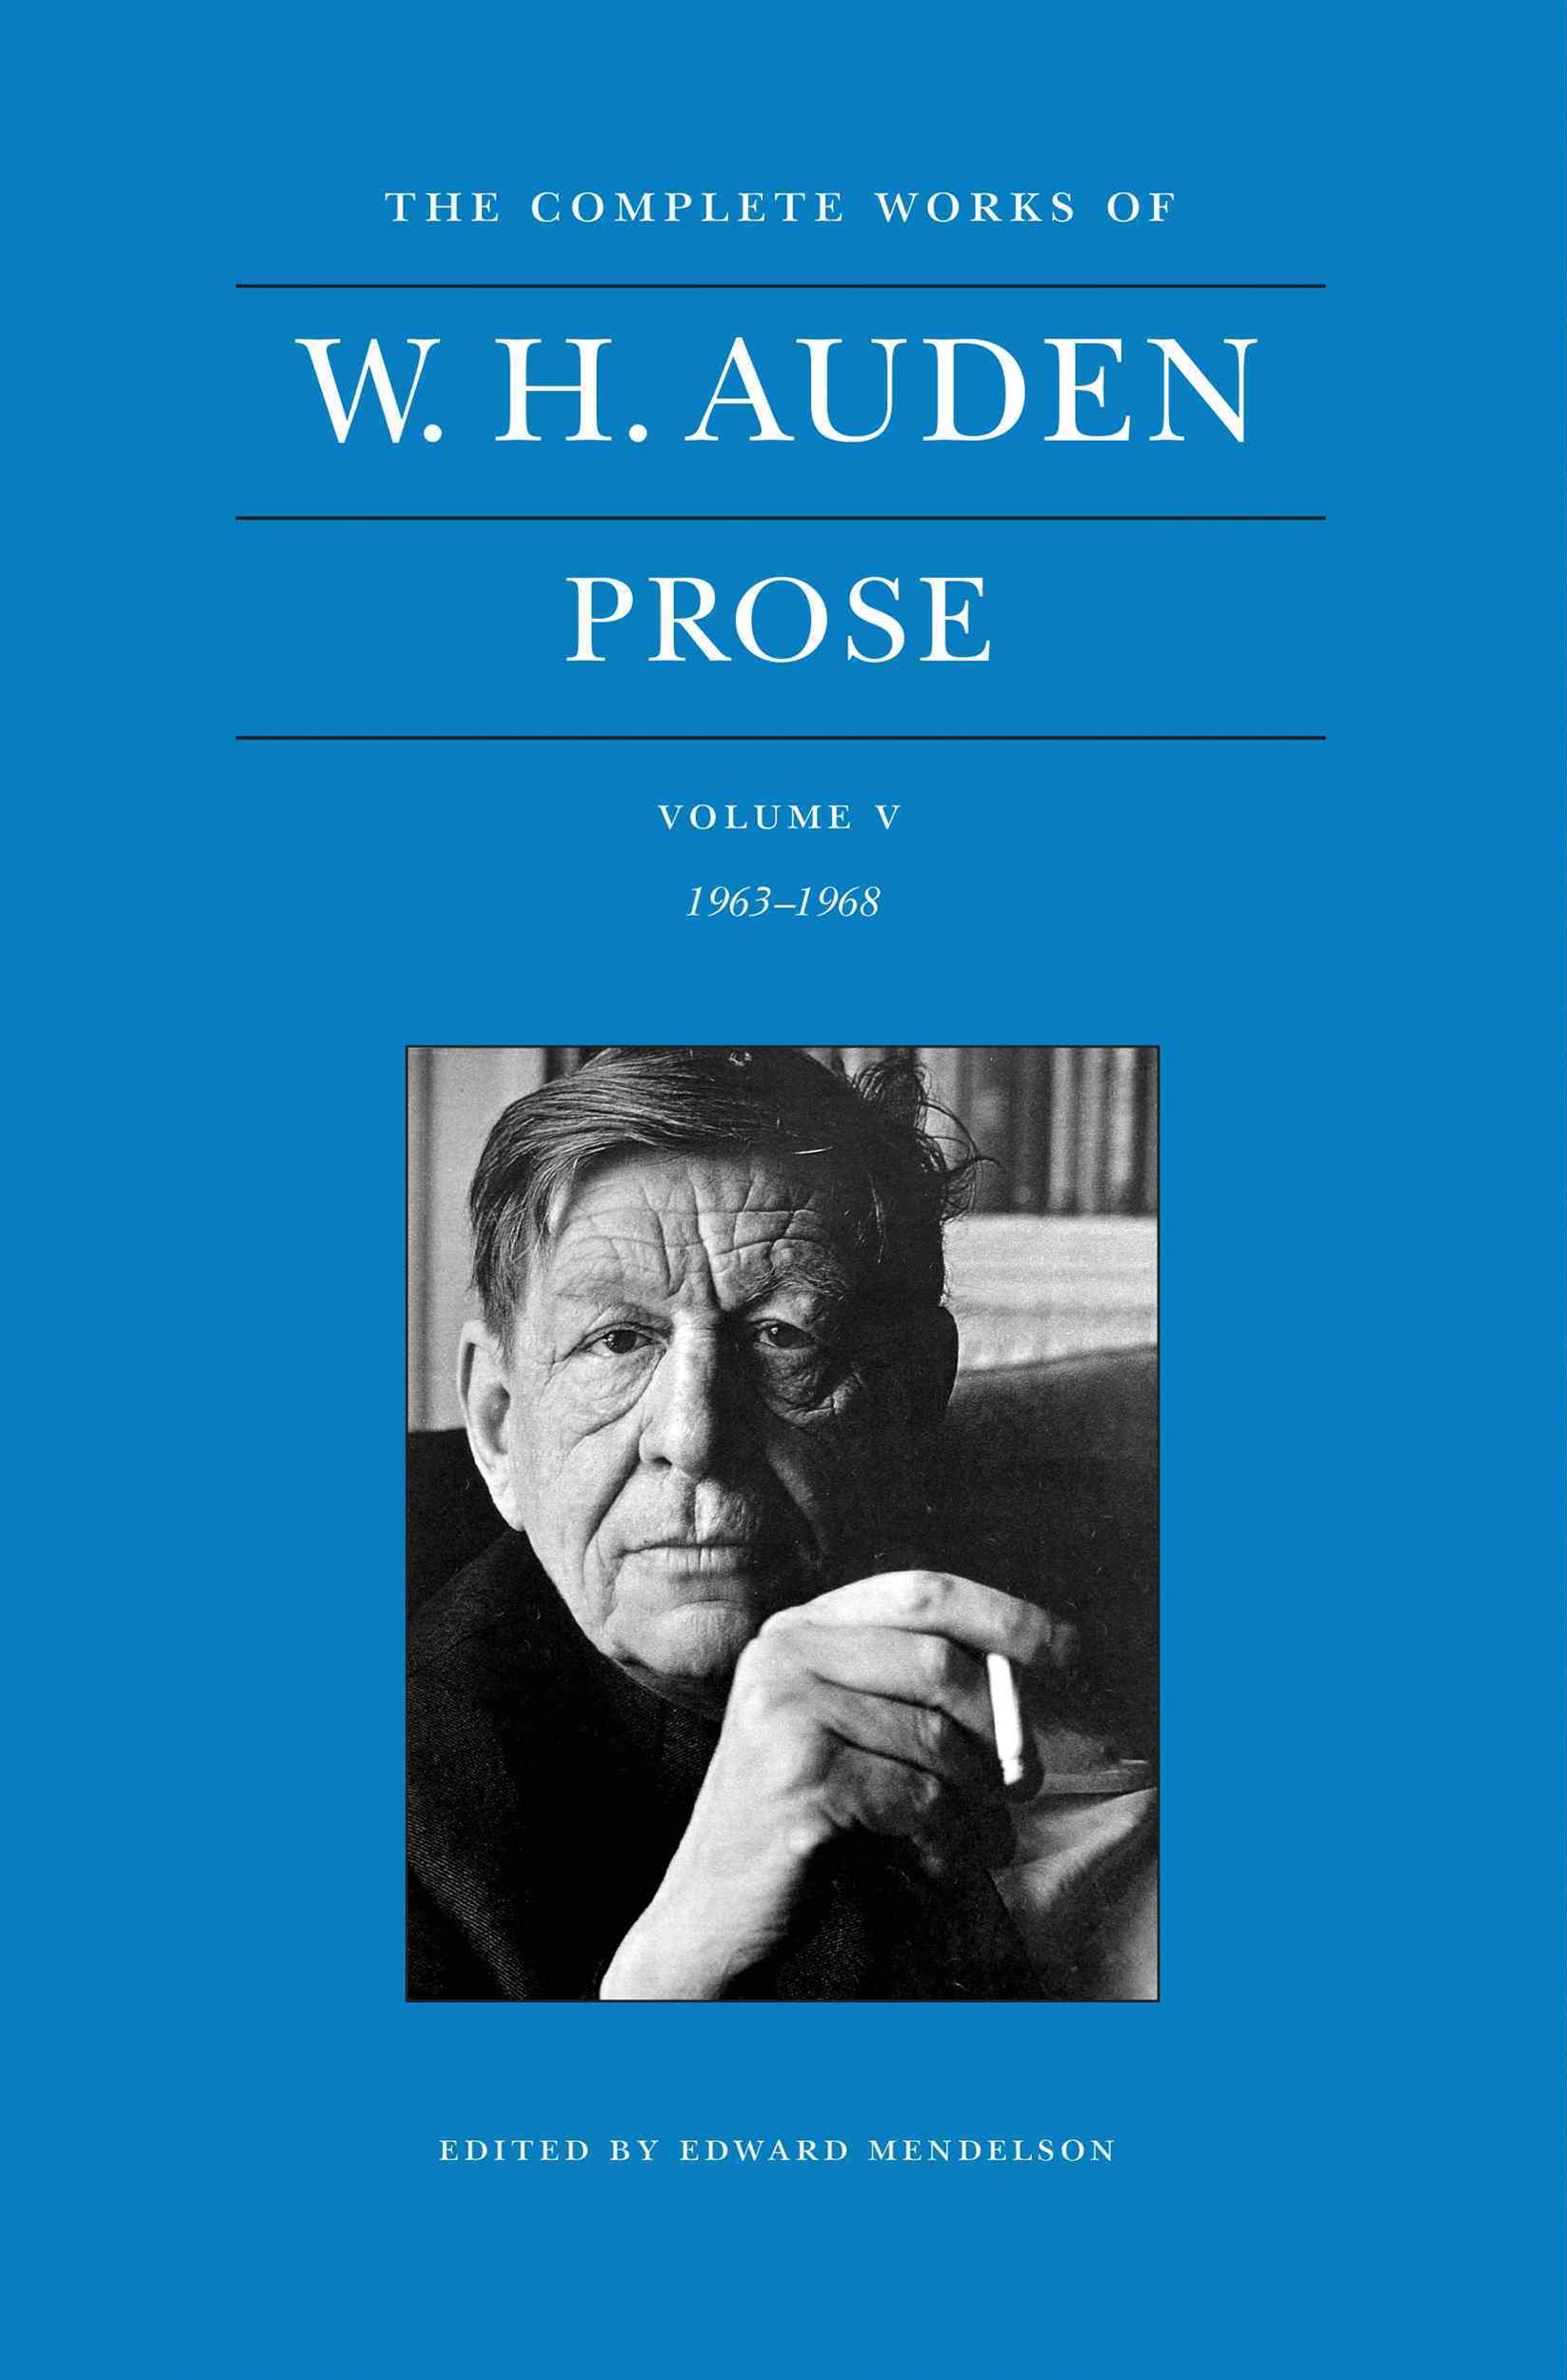 The Complete Works of W. H Auden - Prose, 1963-1968